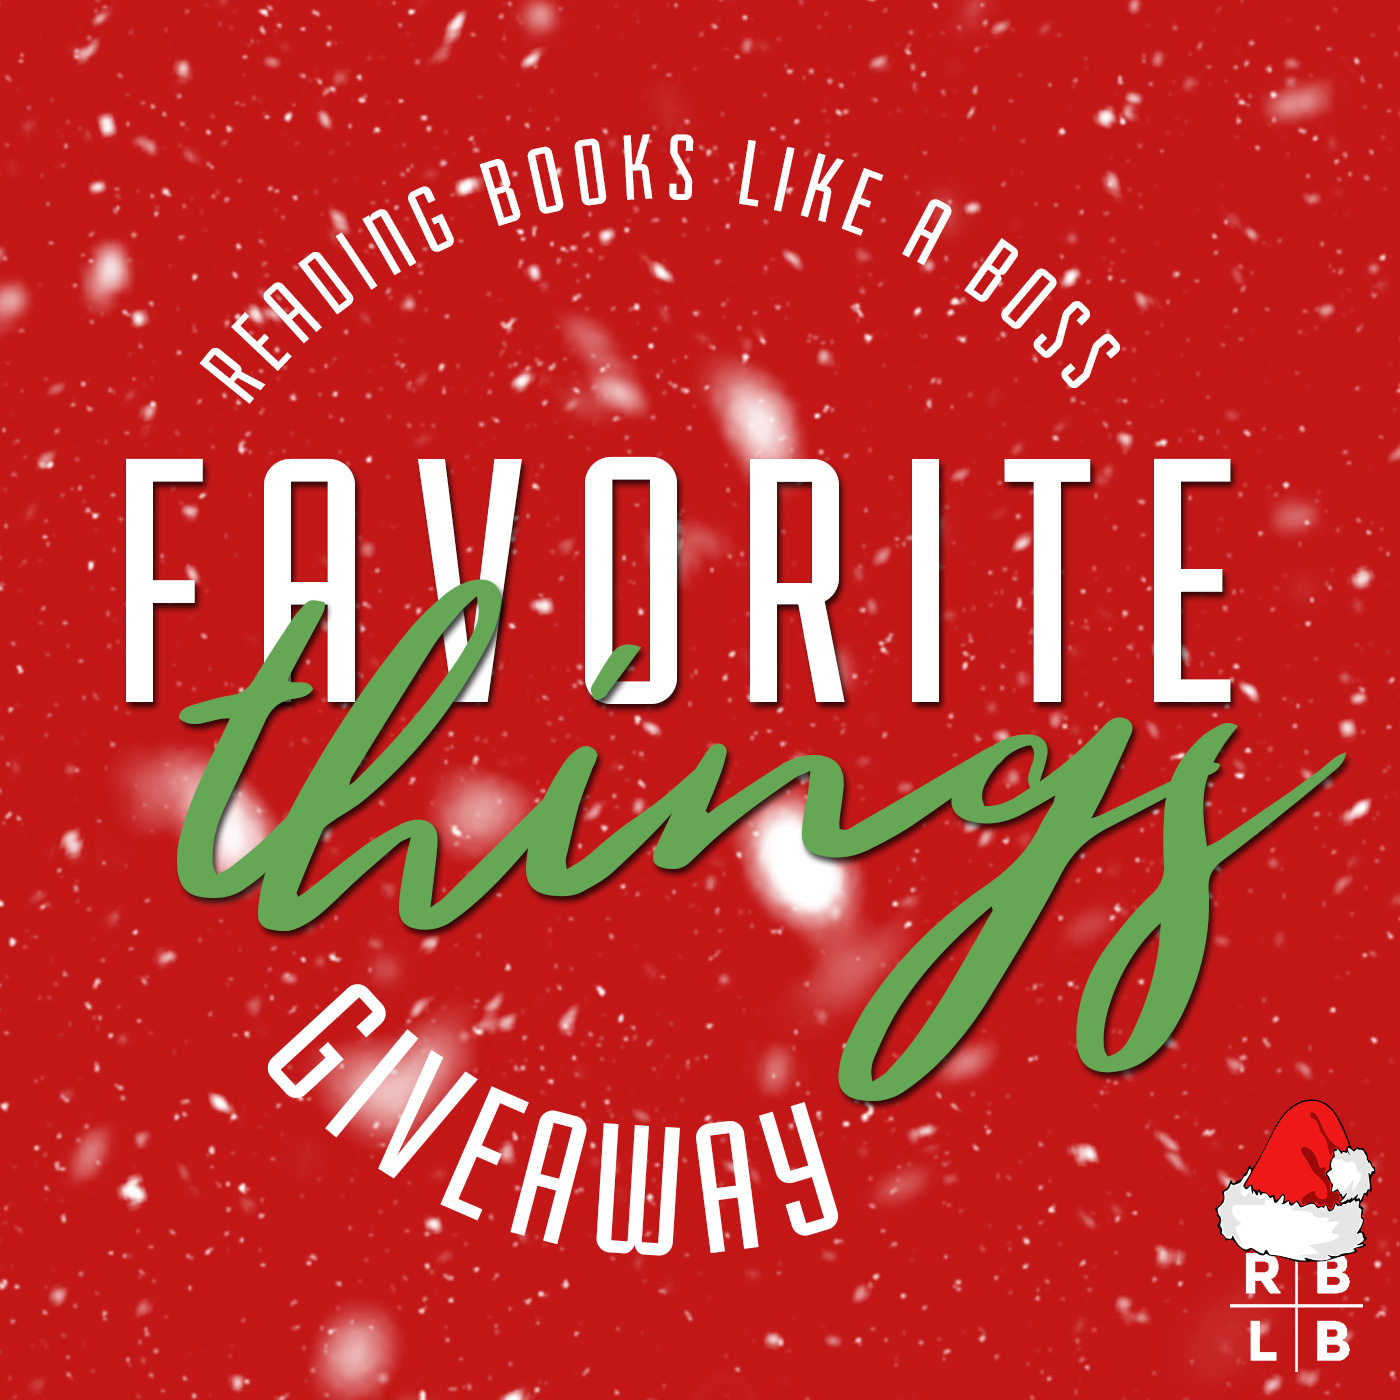 Favorite Things Holiday Giveaways | Reading Books Like a Boss